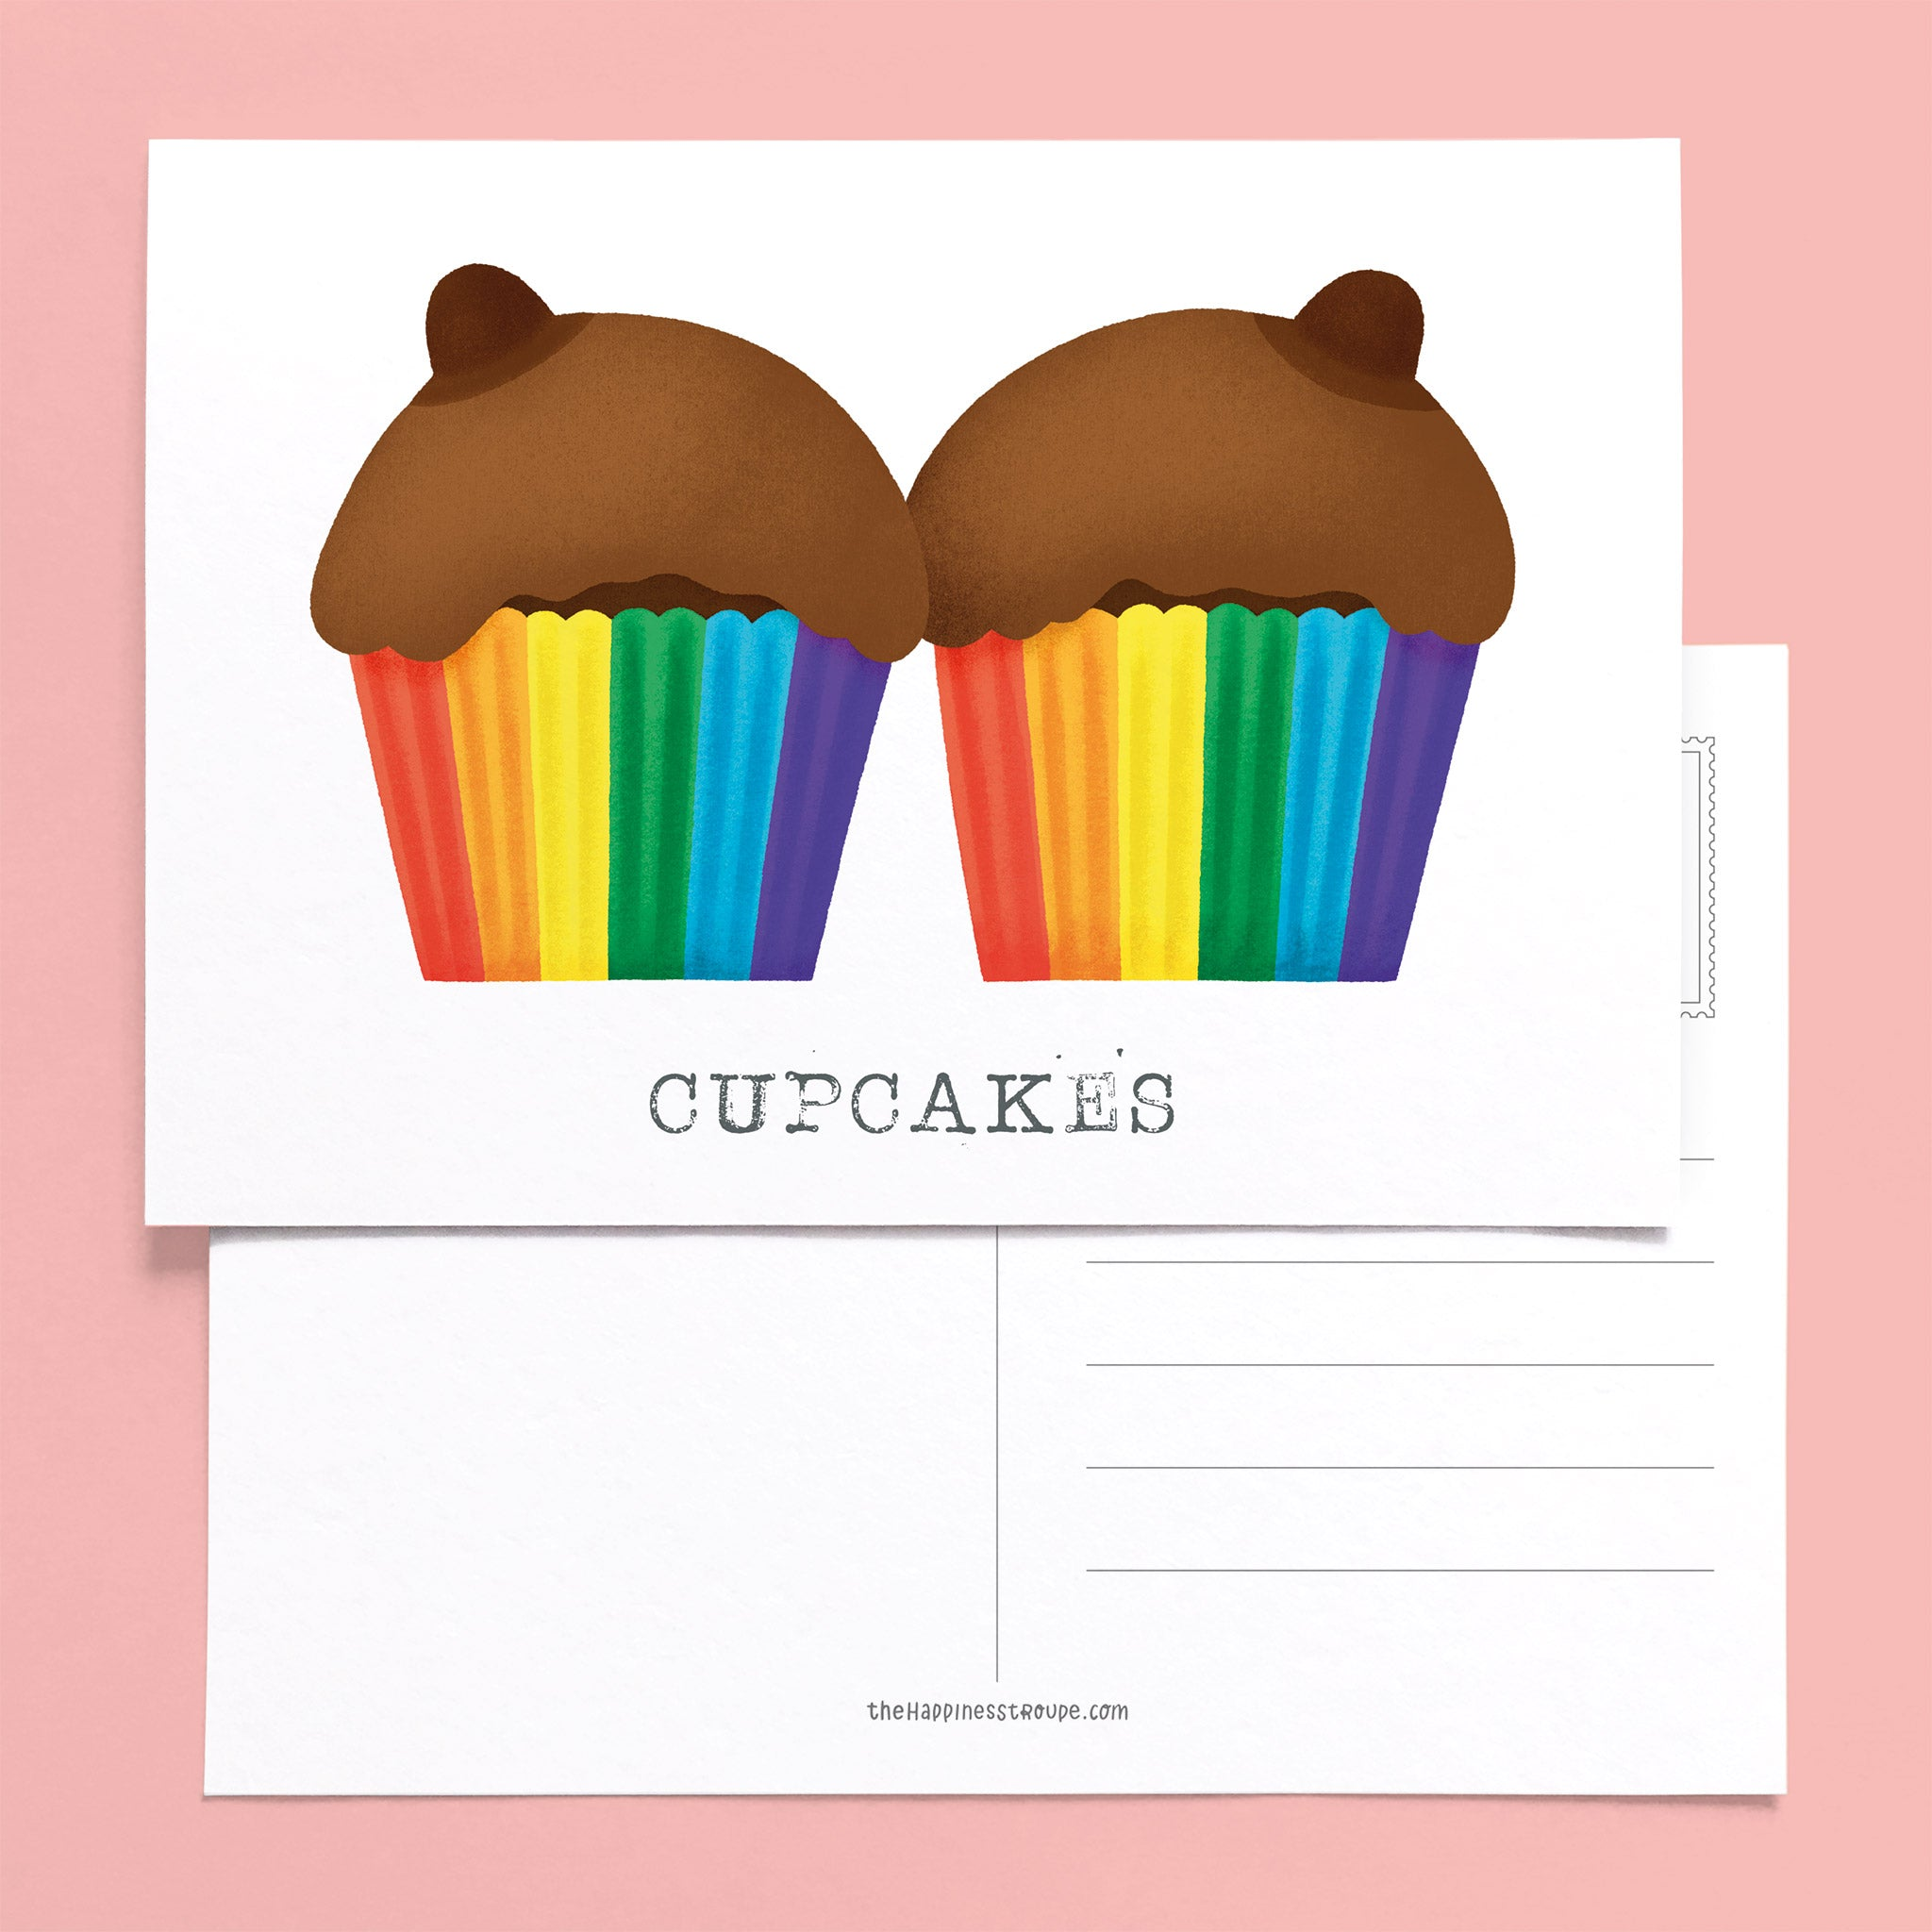 boobs lgbt postcard chocolate rainbow cupcakes